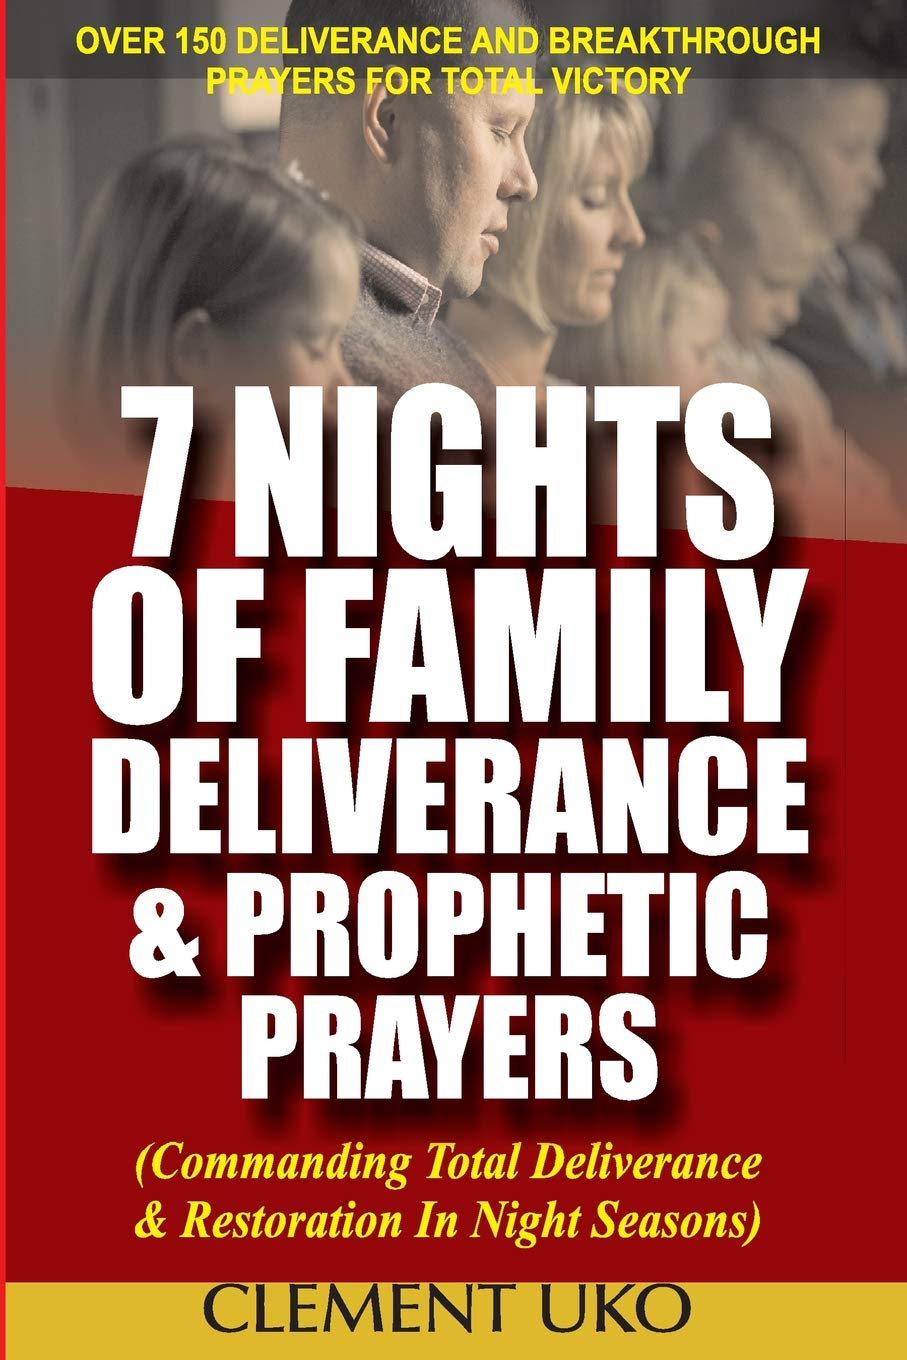 7 Nights of Family Deliverance & Prophetic Prayers